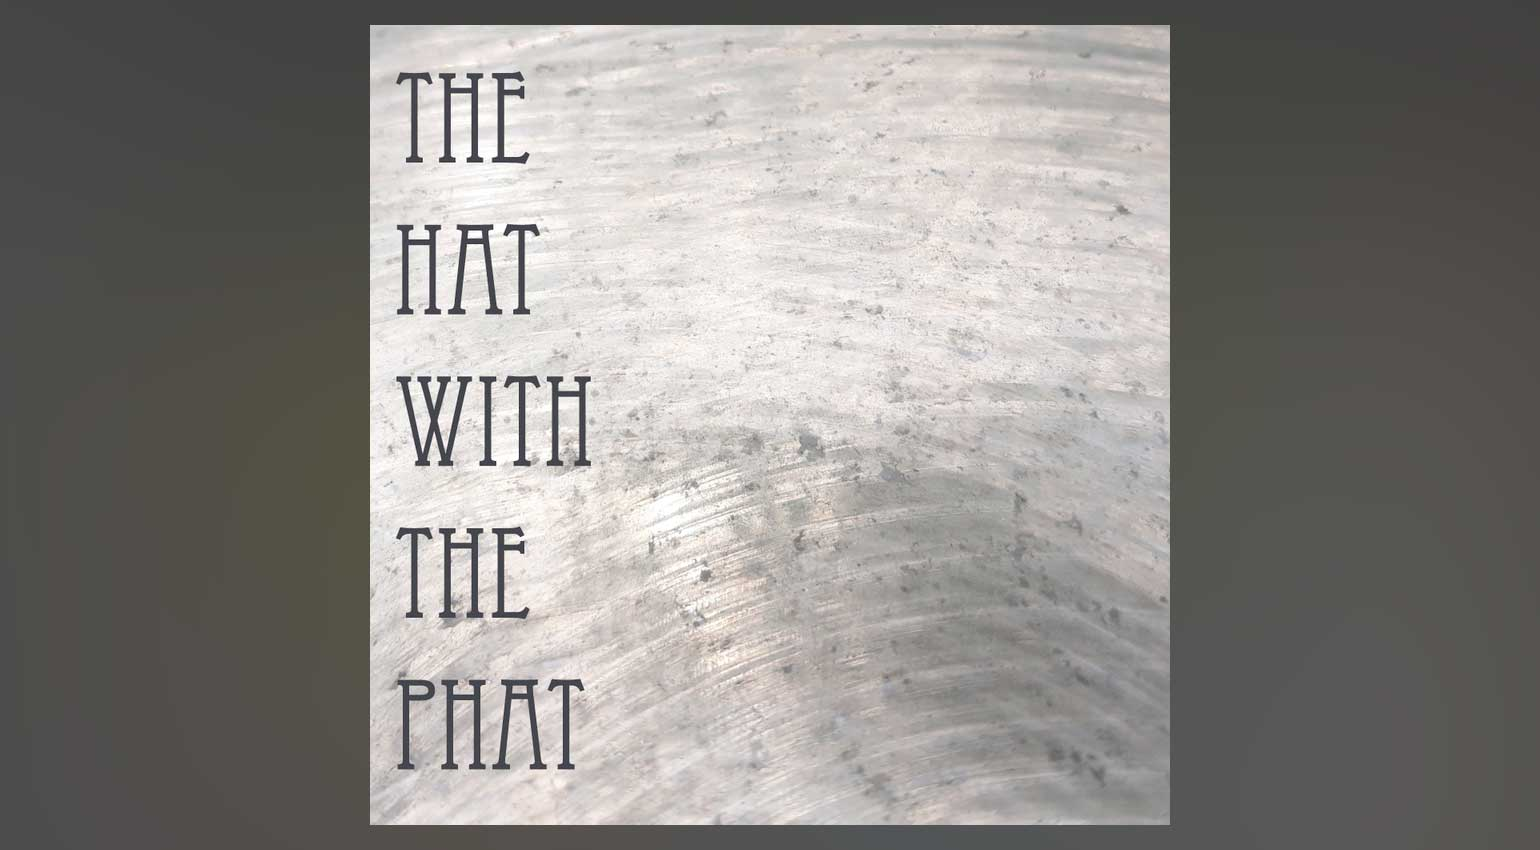 Karoryfer The Hat With The Phat